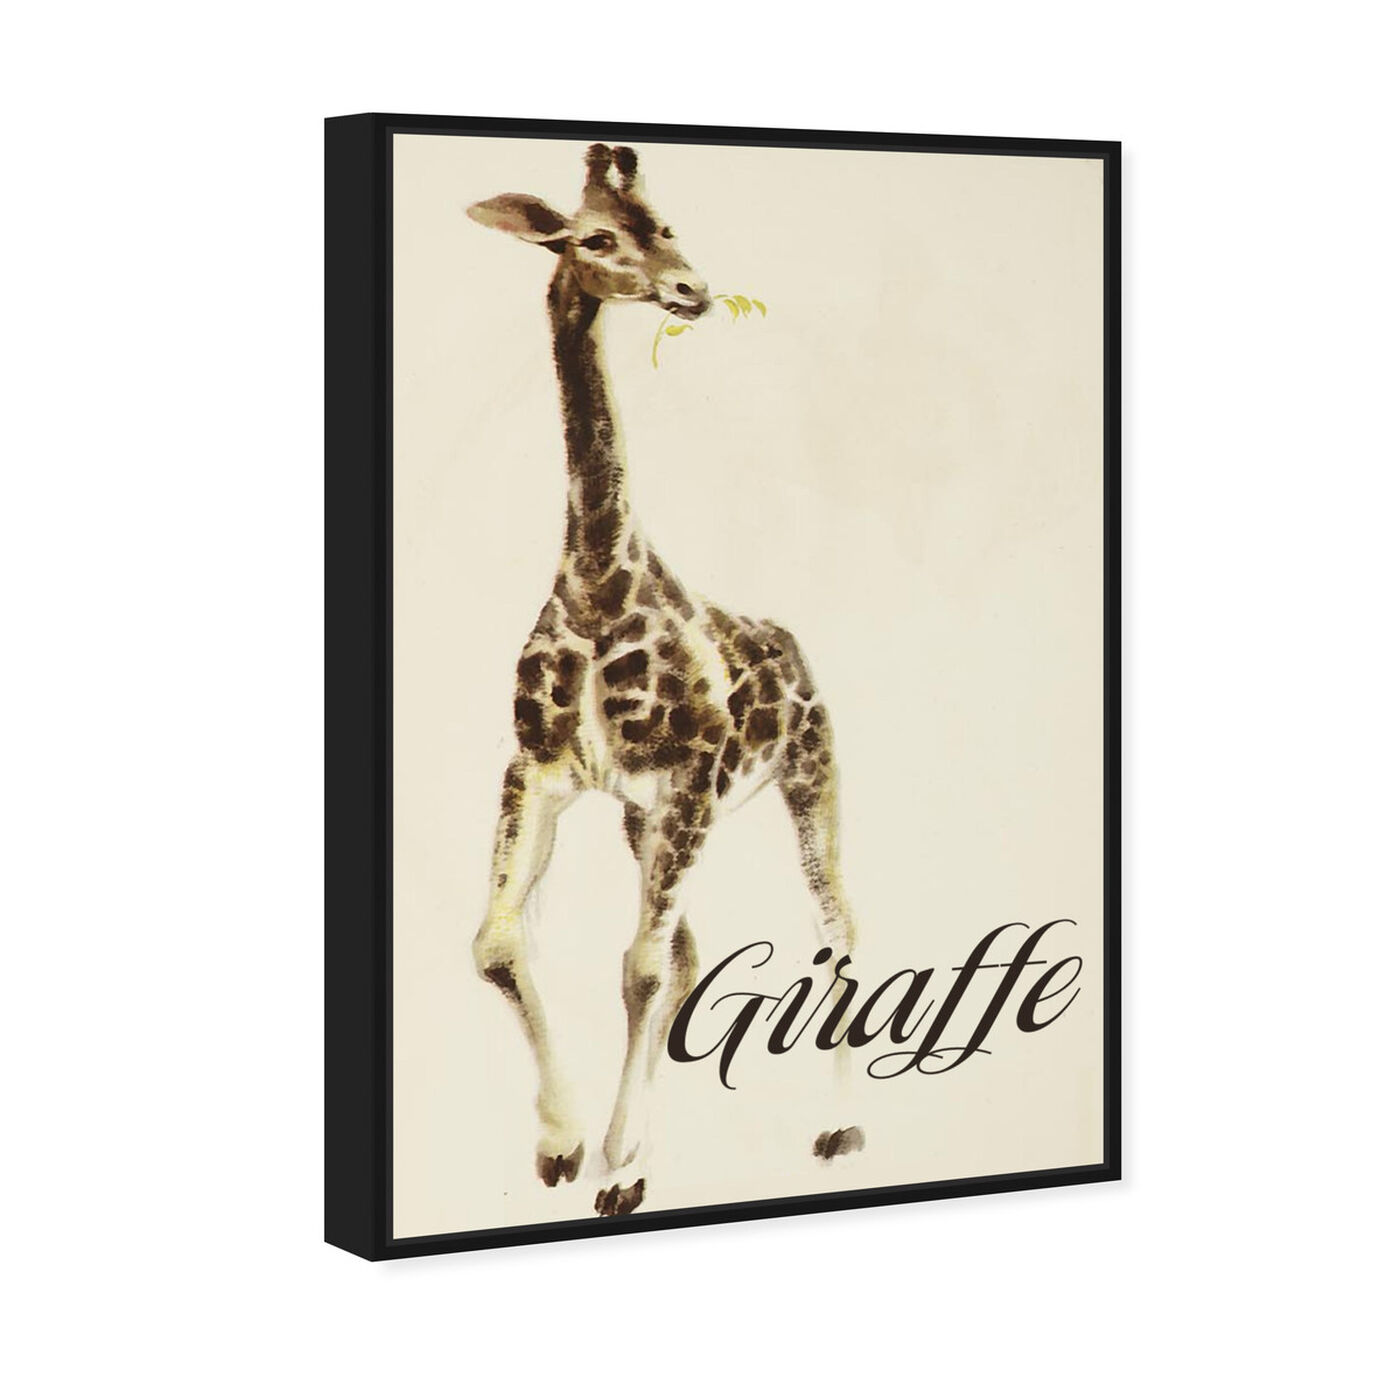 Angled view of Giraffe featuring animals and zoo and wild animals art.